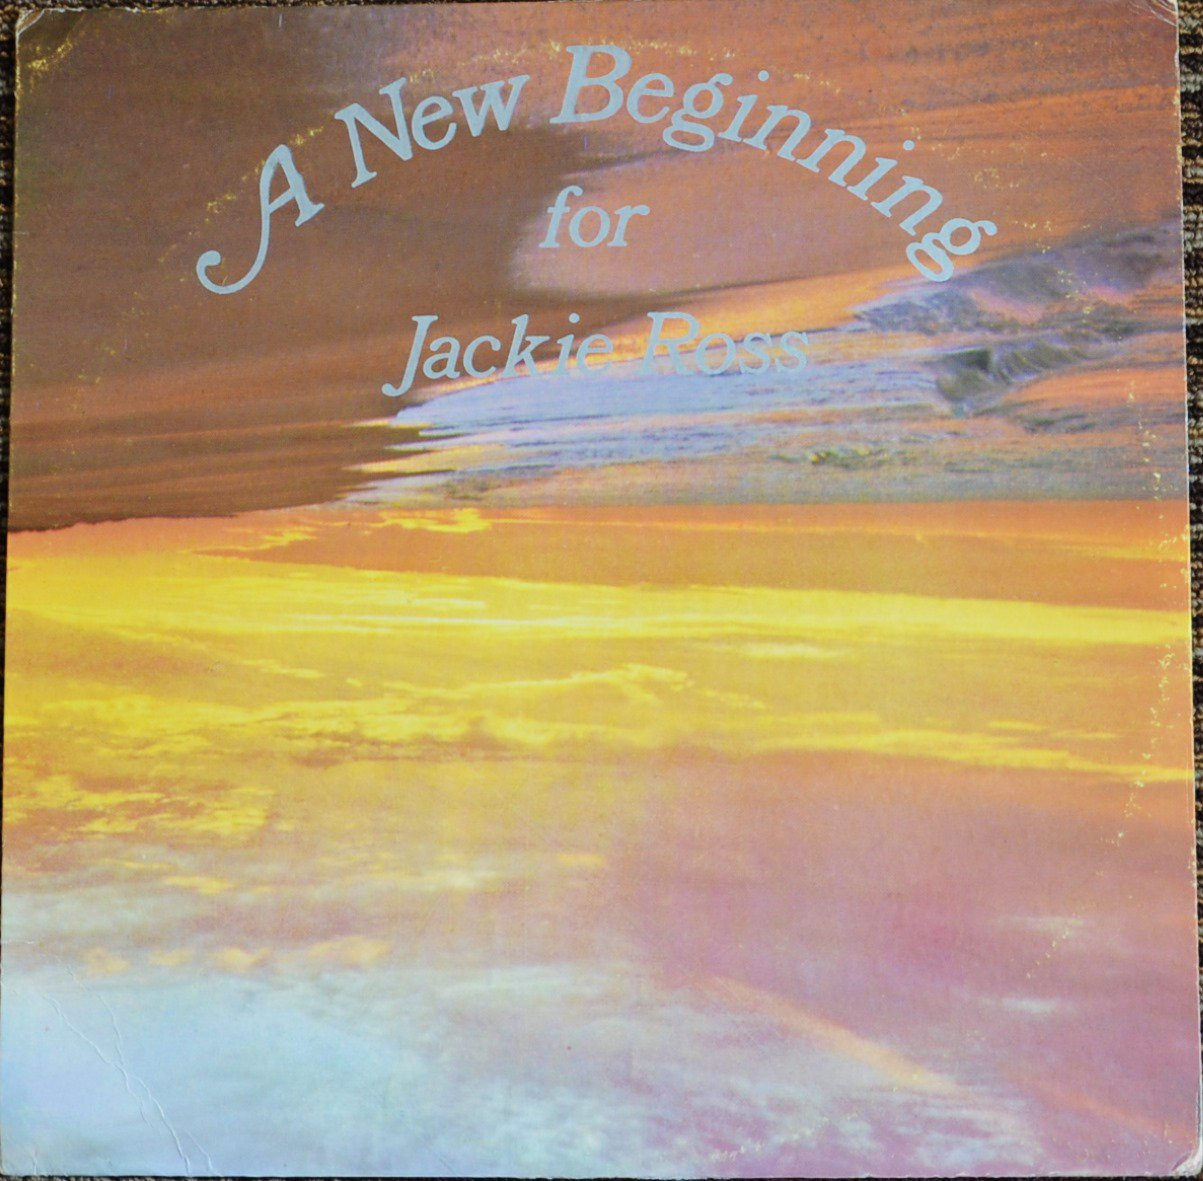 JACKIE ROSS ‎/ A NEW BEGINNING (LP)